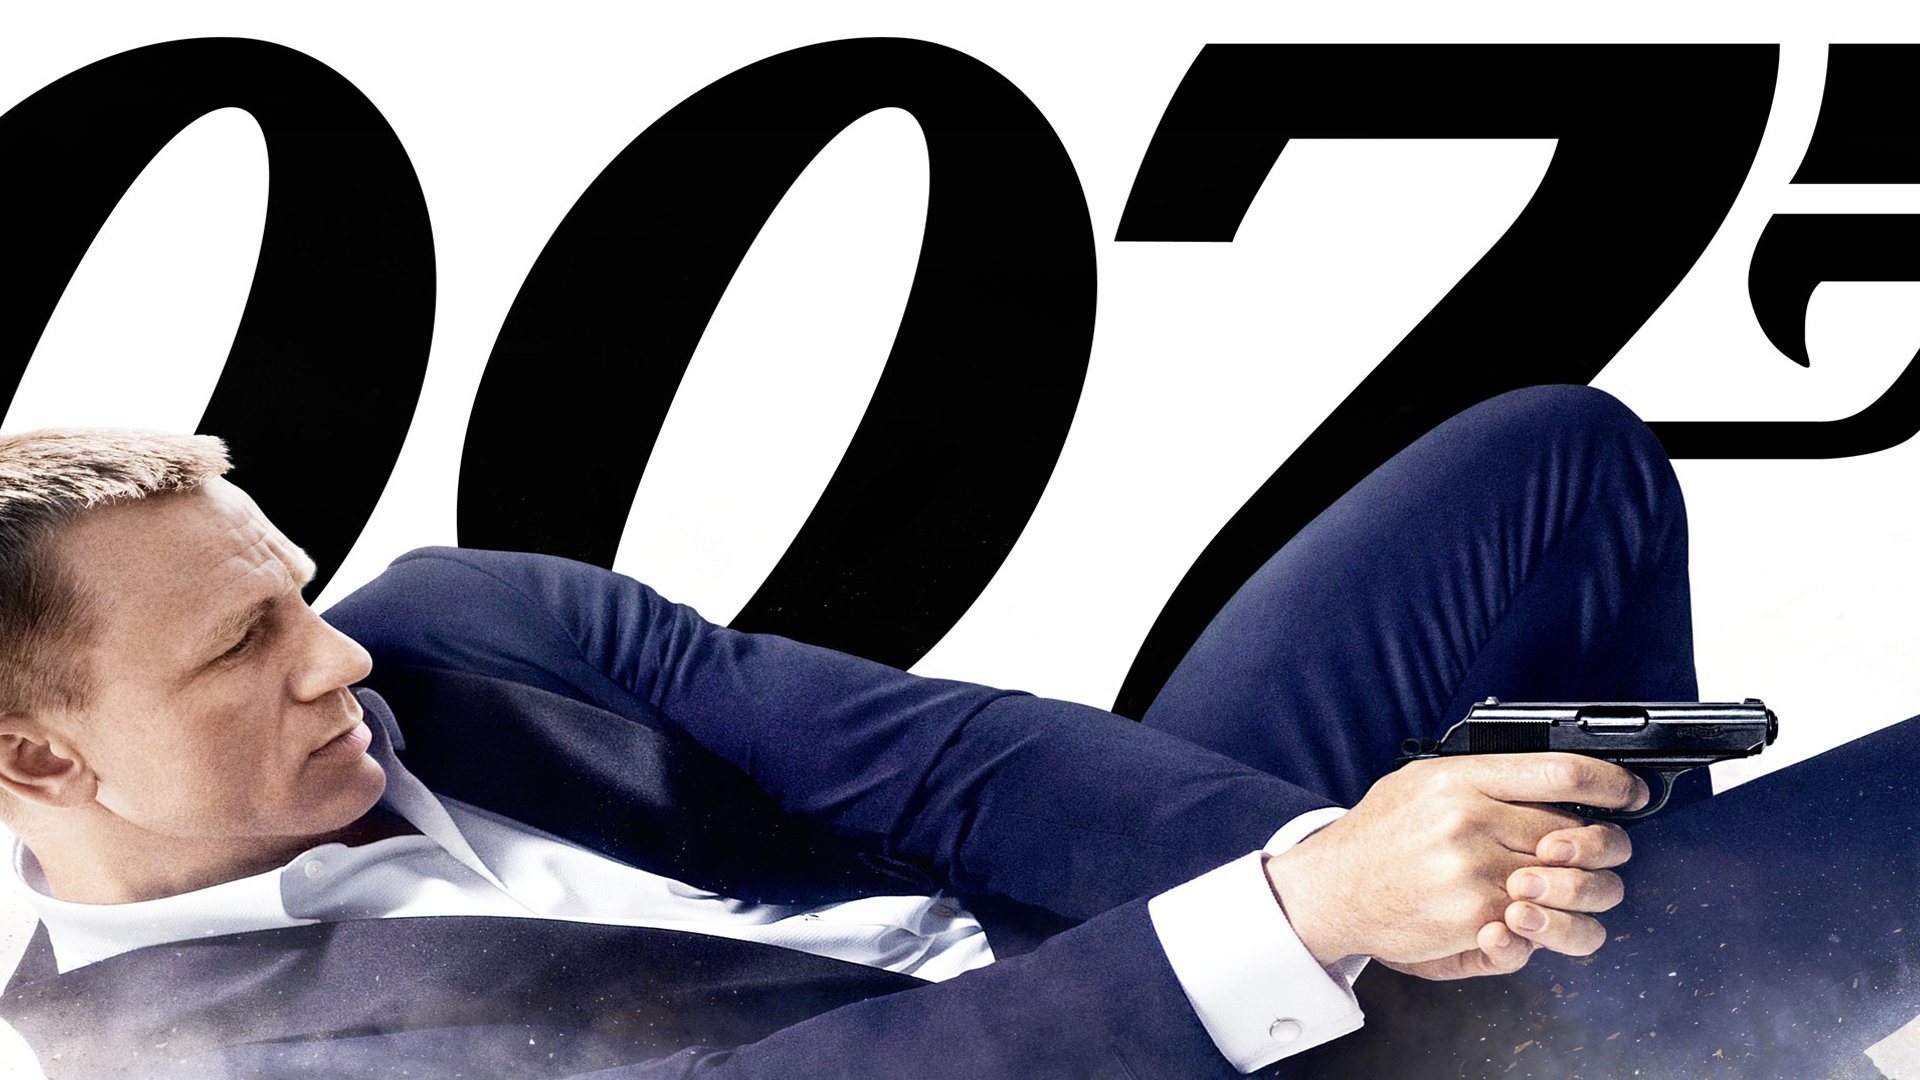 007 James Bond HD Wallpaper | Background Image | 1920x1080 | ID ...